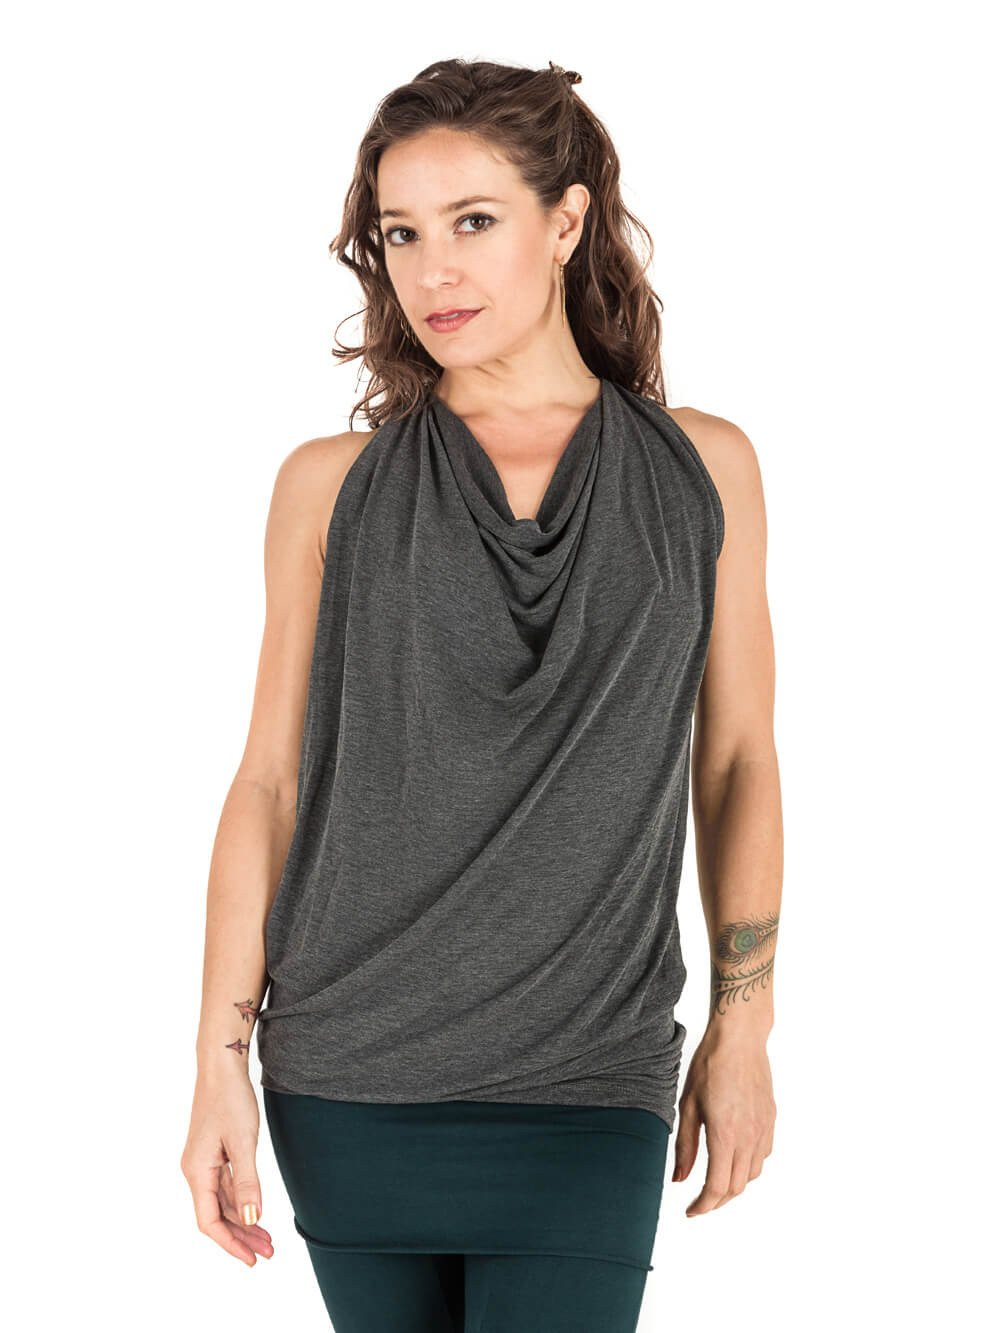 Womens Sleeveless Rayon Jersey Waterfall Top in Heather Grey